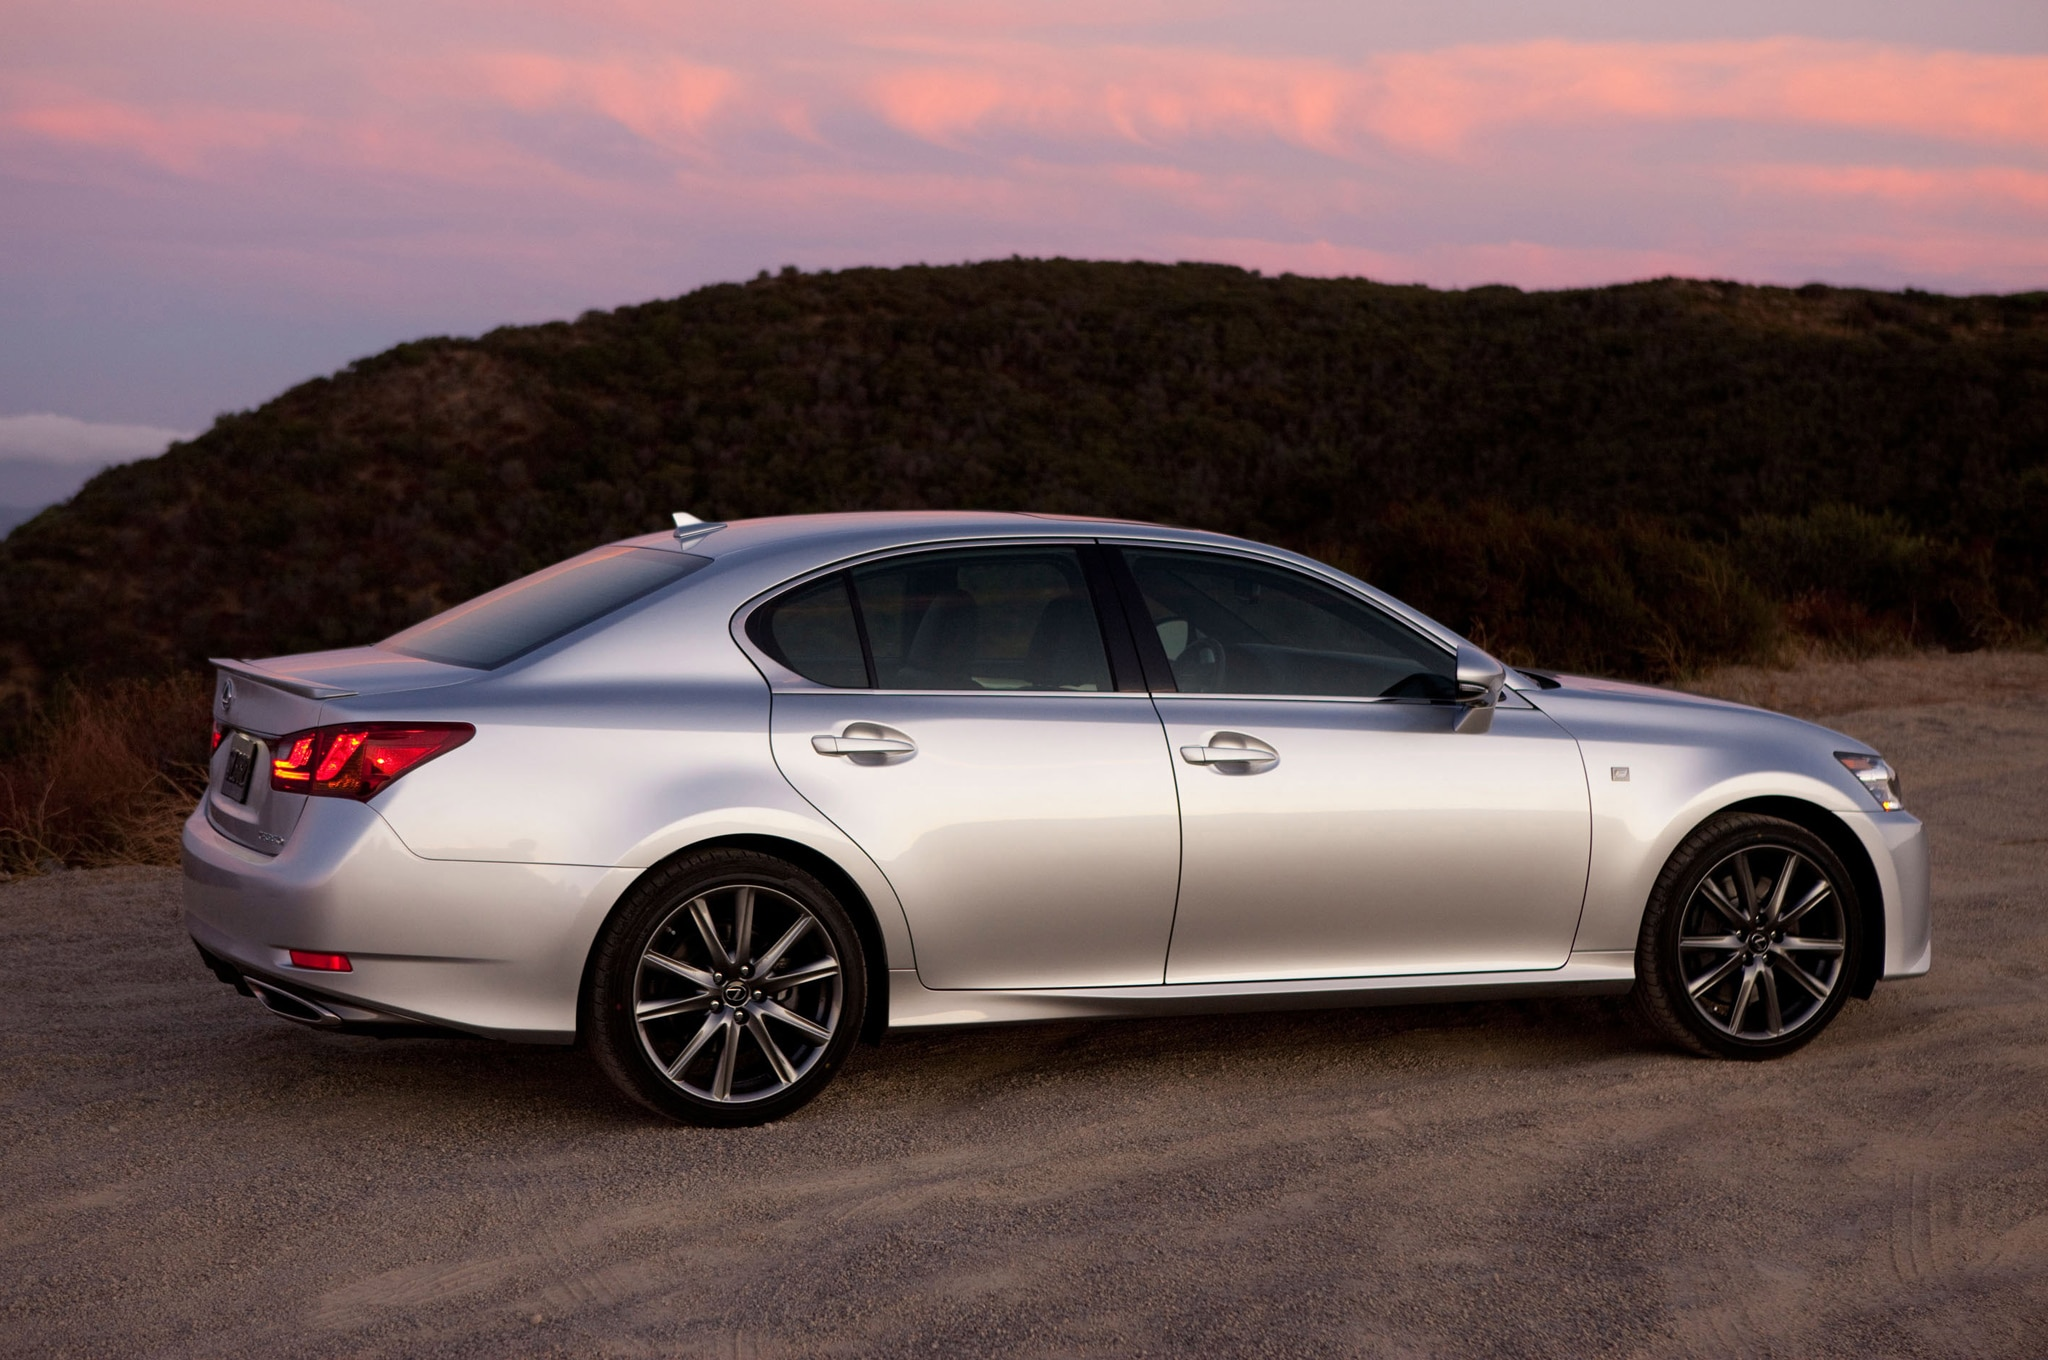 2014 lexus gs350 replaces six speed automatic with eight speed. Black Bedroom Furniture Sets. Home Design Ideas